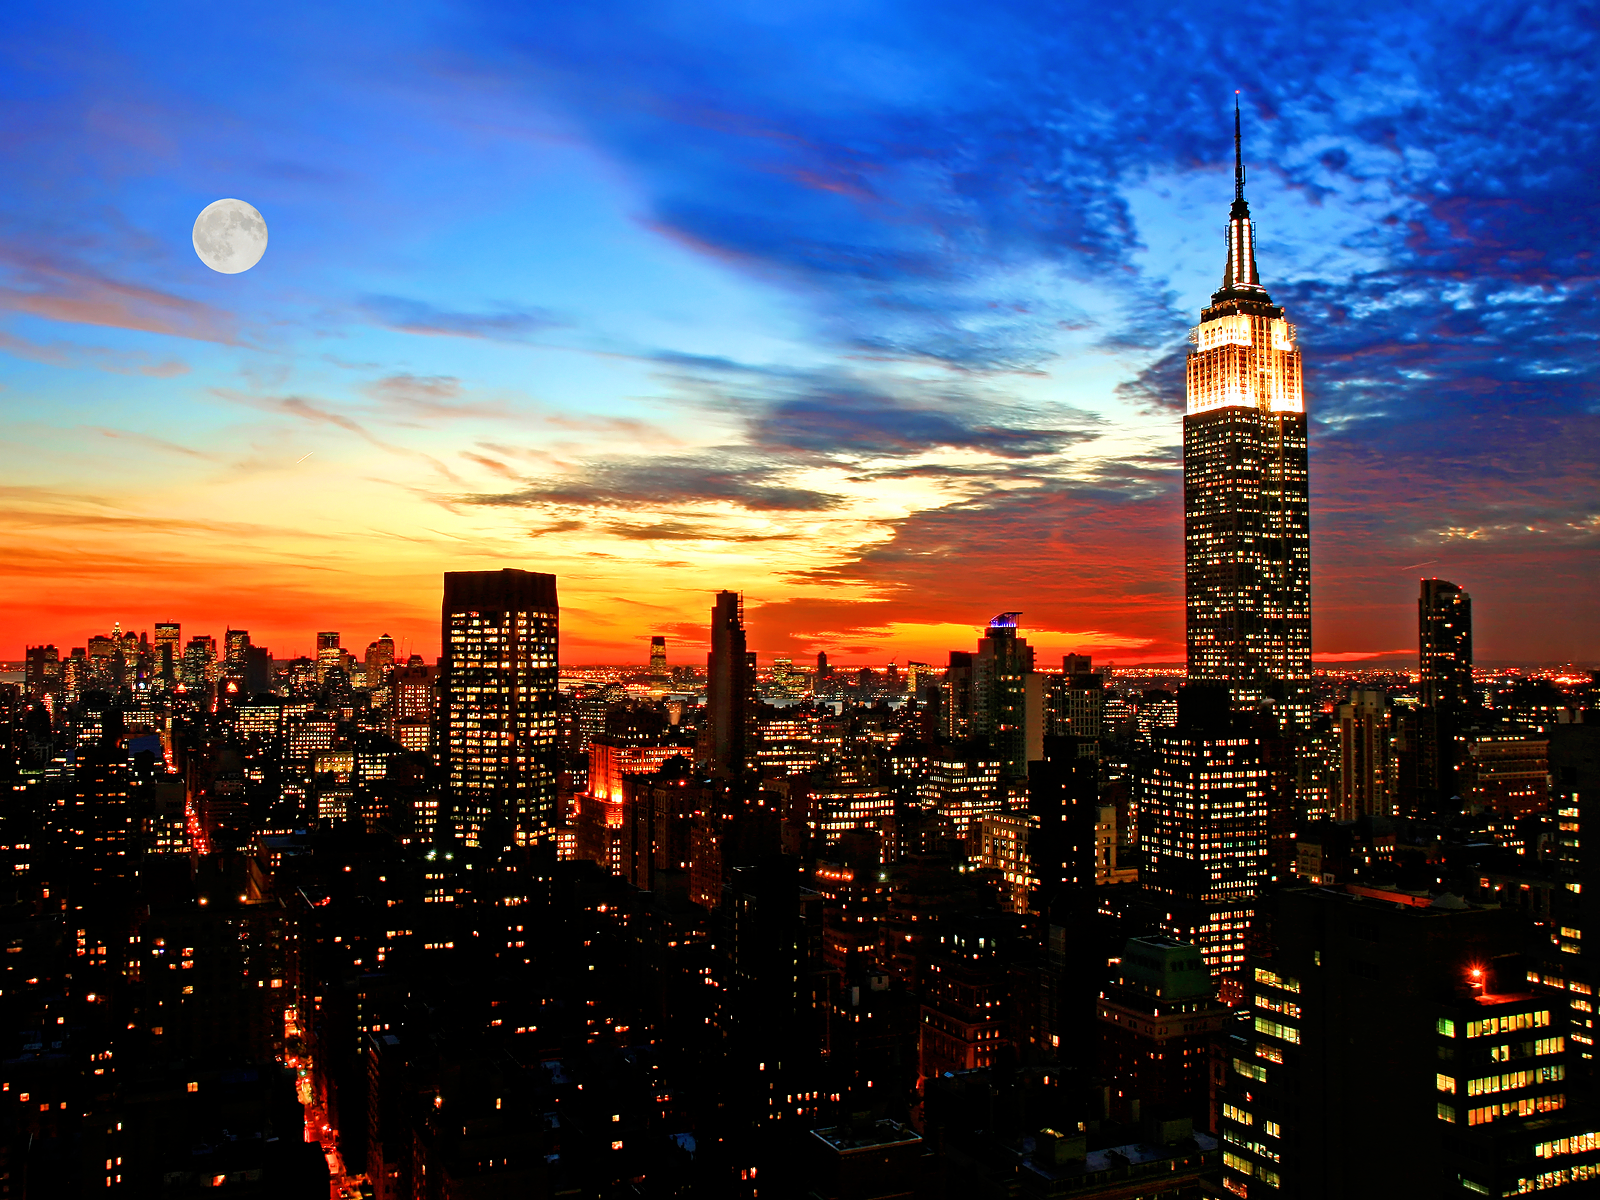 Full Moon Skyline New York wallpaper The Serious People May Cause 1600x1200